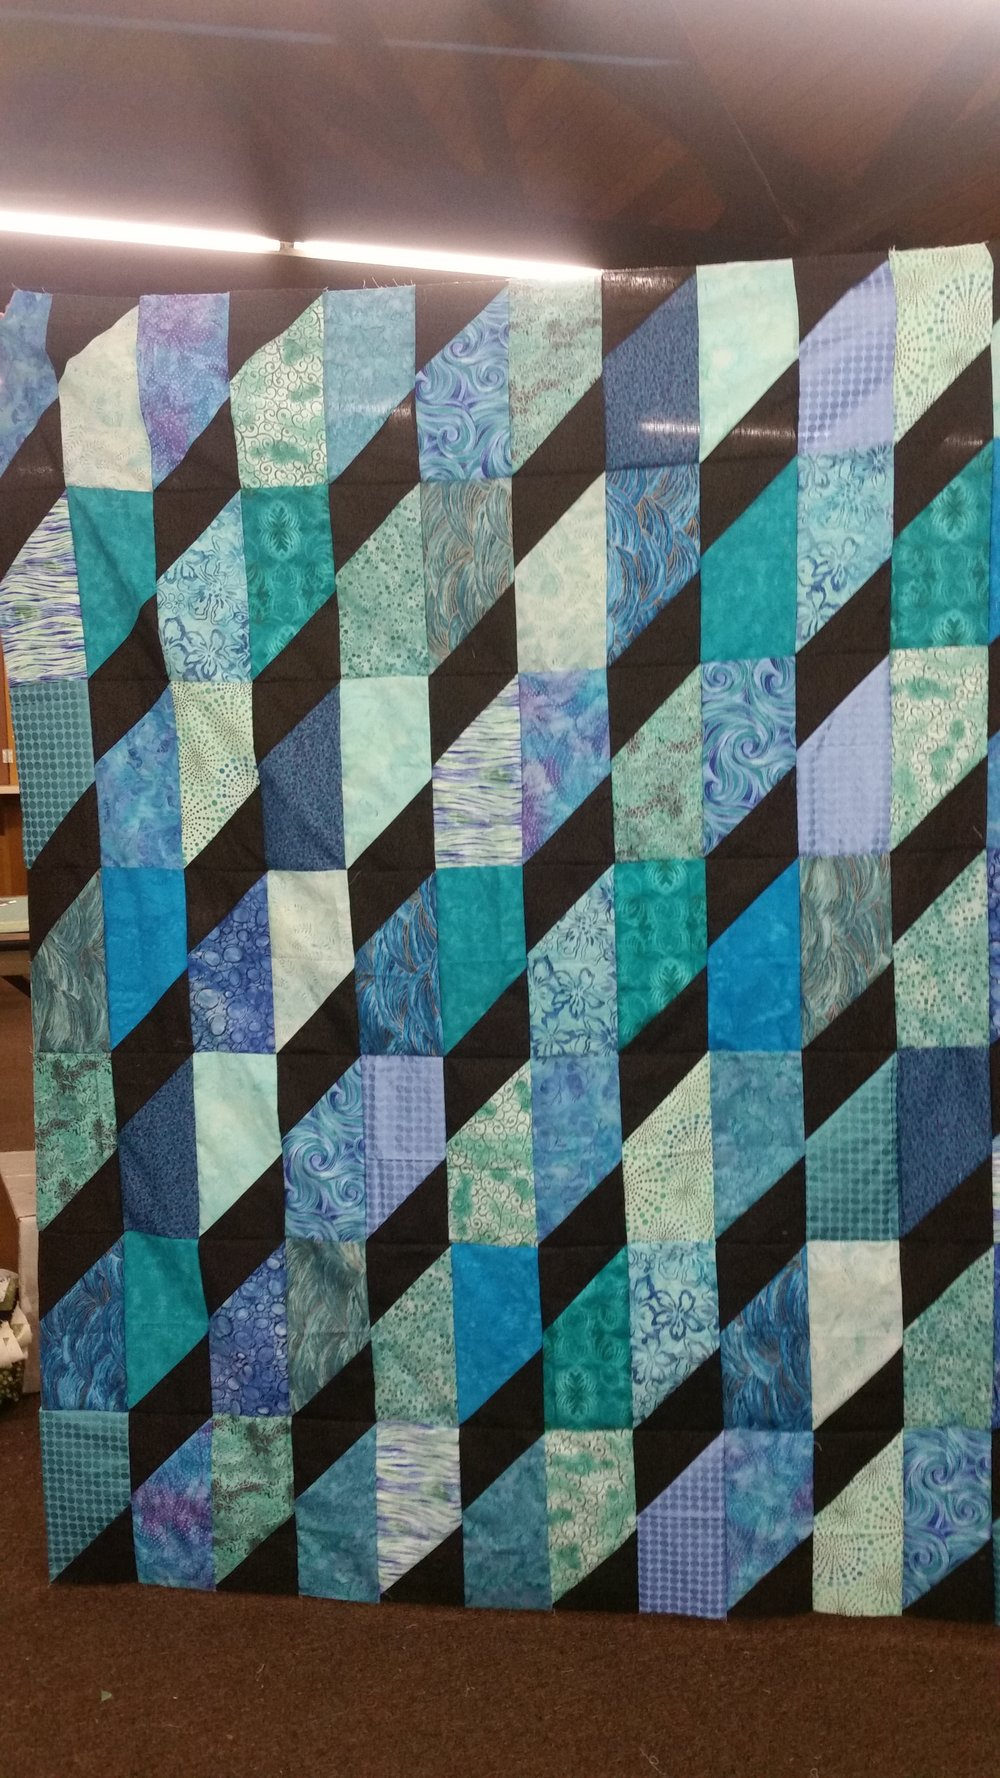 Kathy Peacock's Mystery Quilt